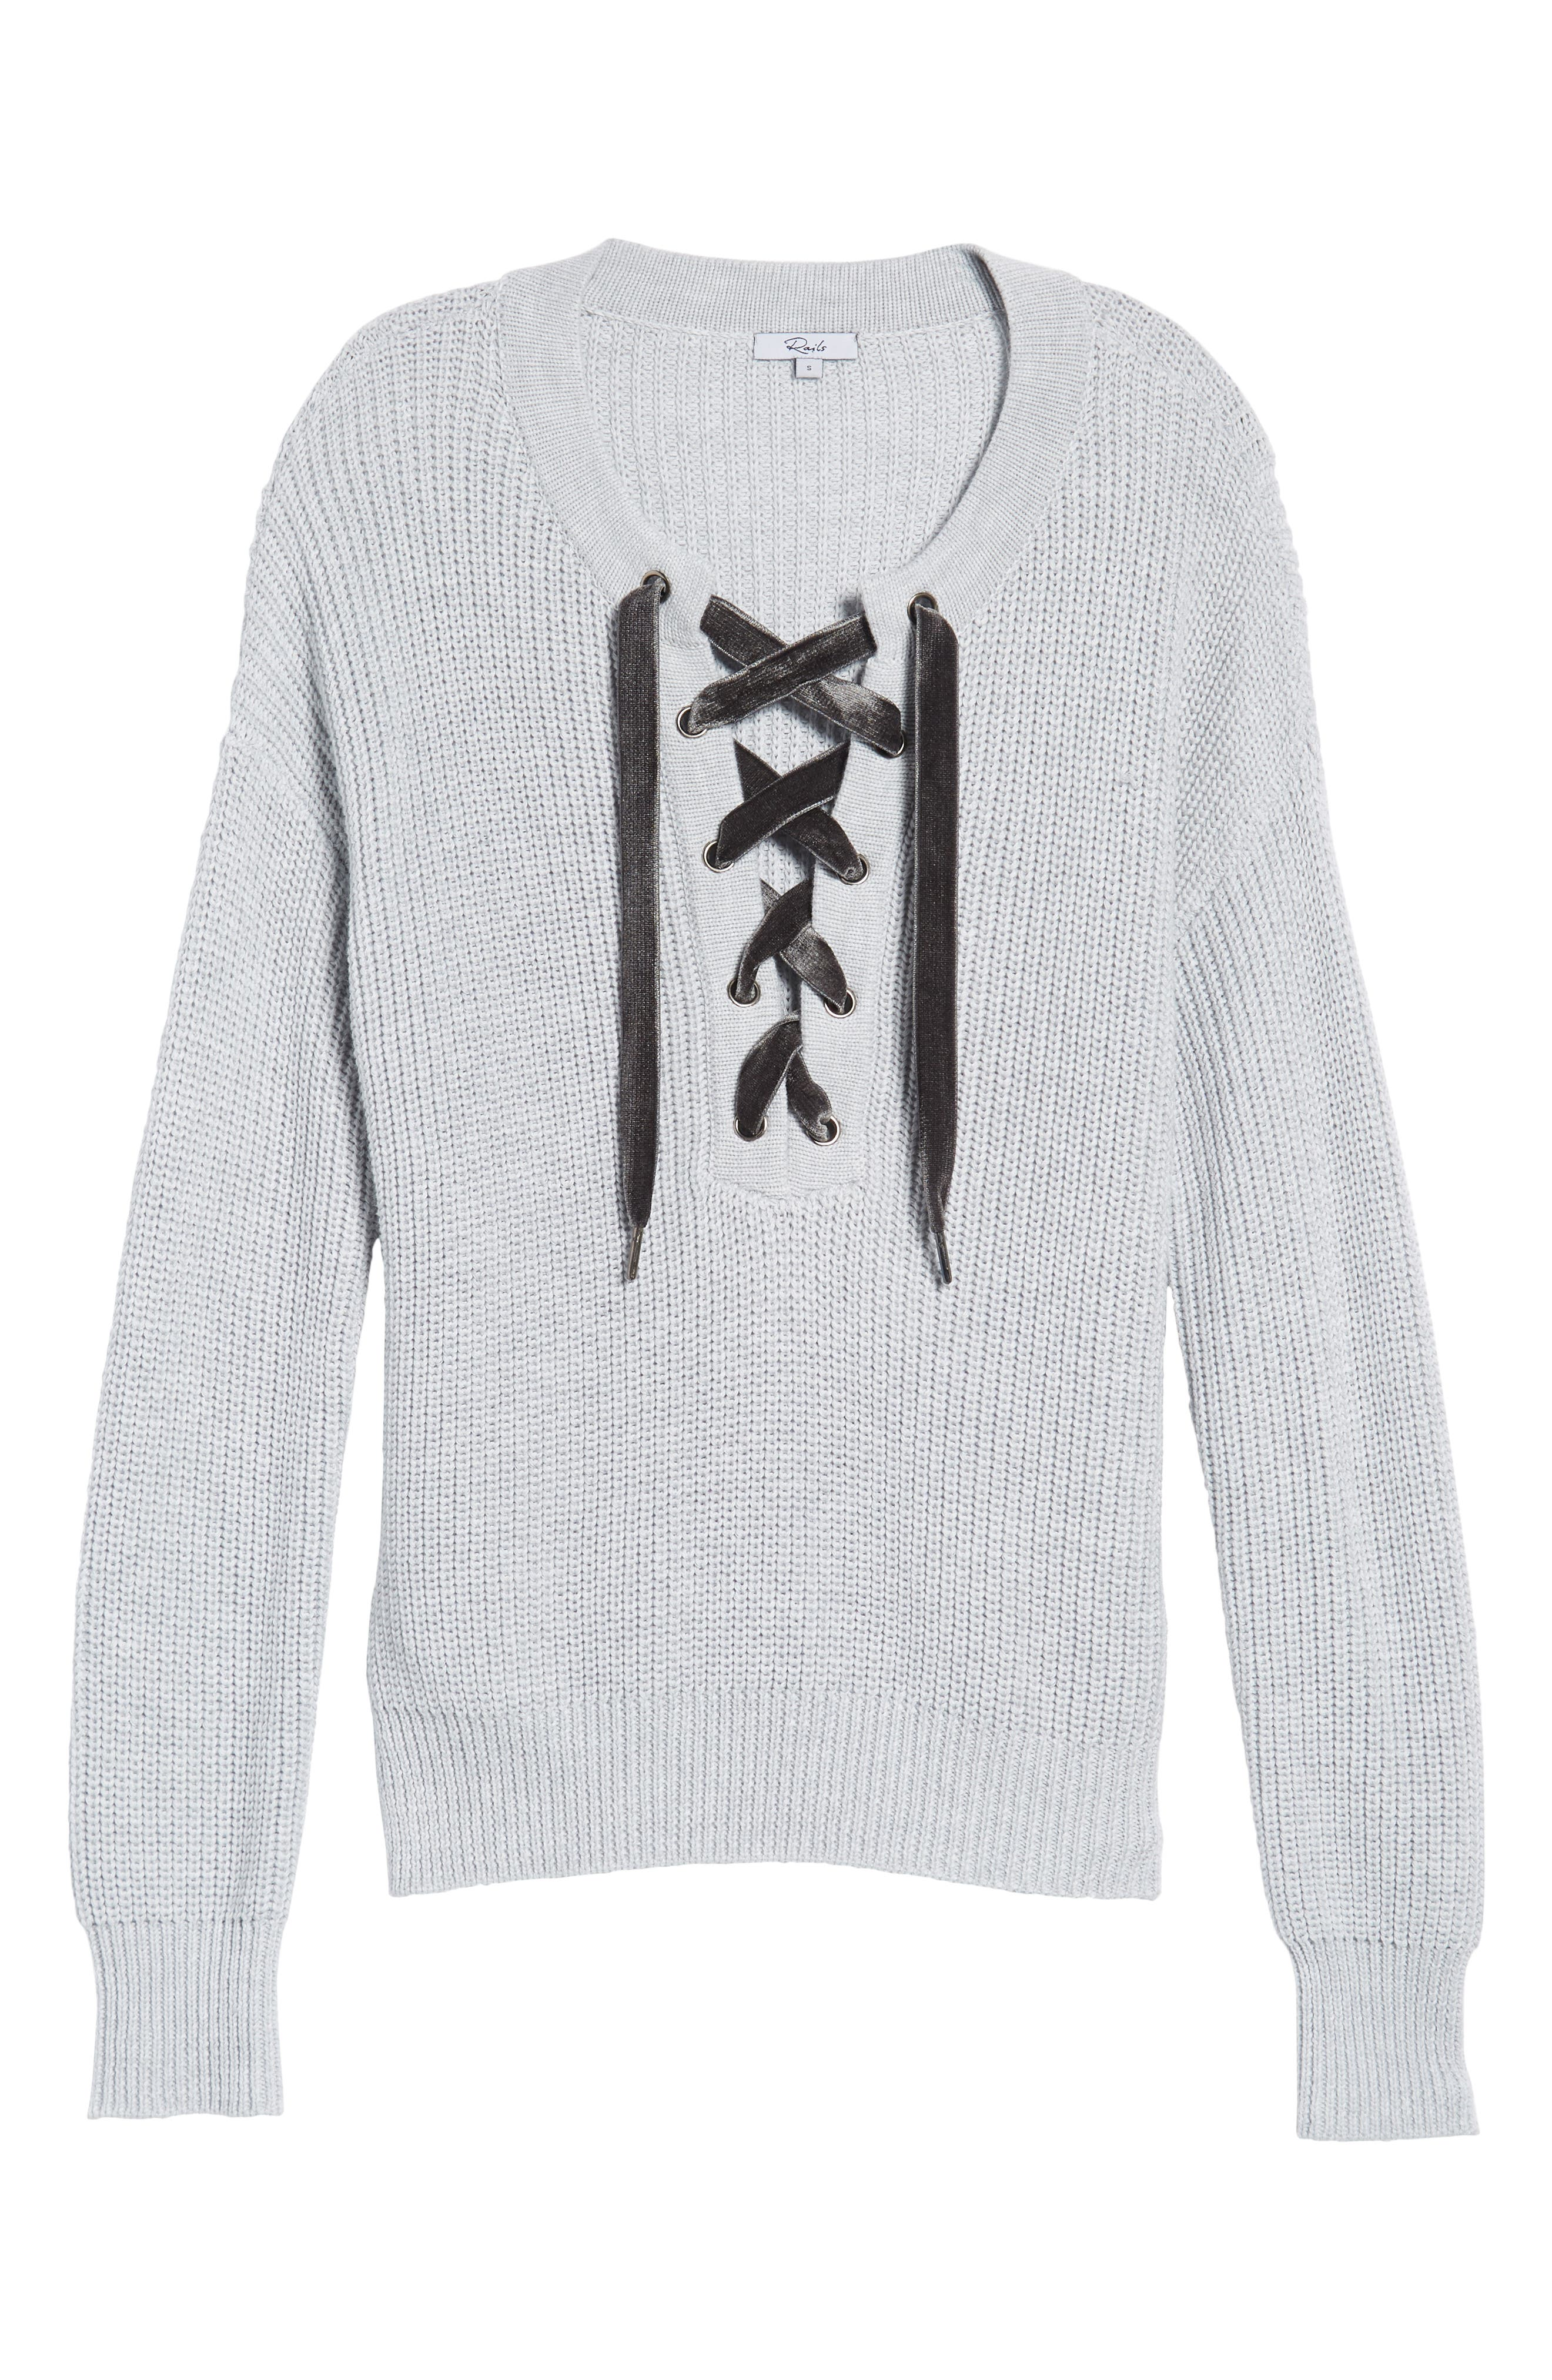 Olivia Lace-Up Sweater,                             Alternate thumbnail 6, color,                             Heather Grey